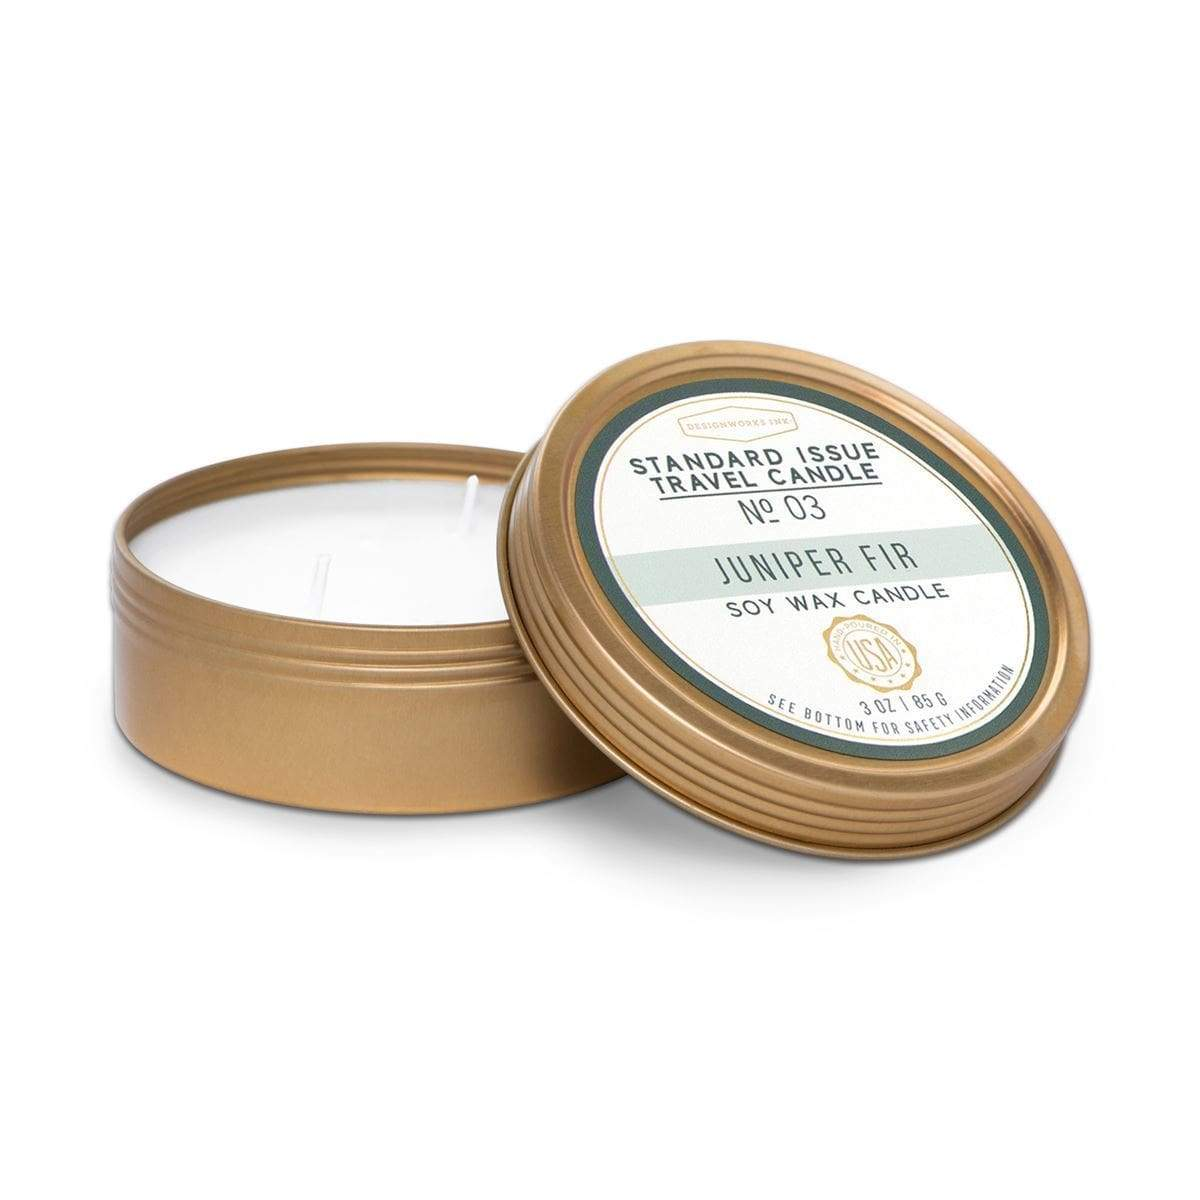 Standard Issue Travel Soy Wax Candle - Juniper Fir